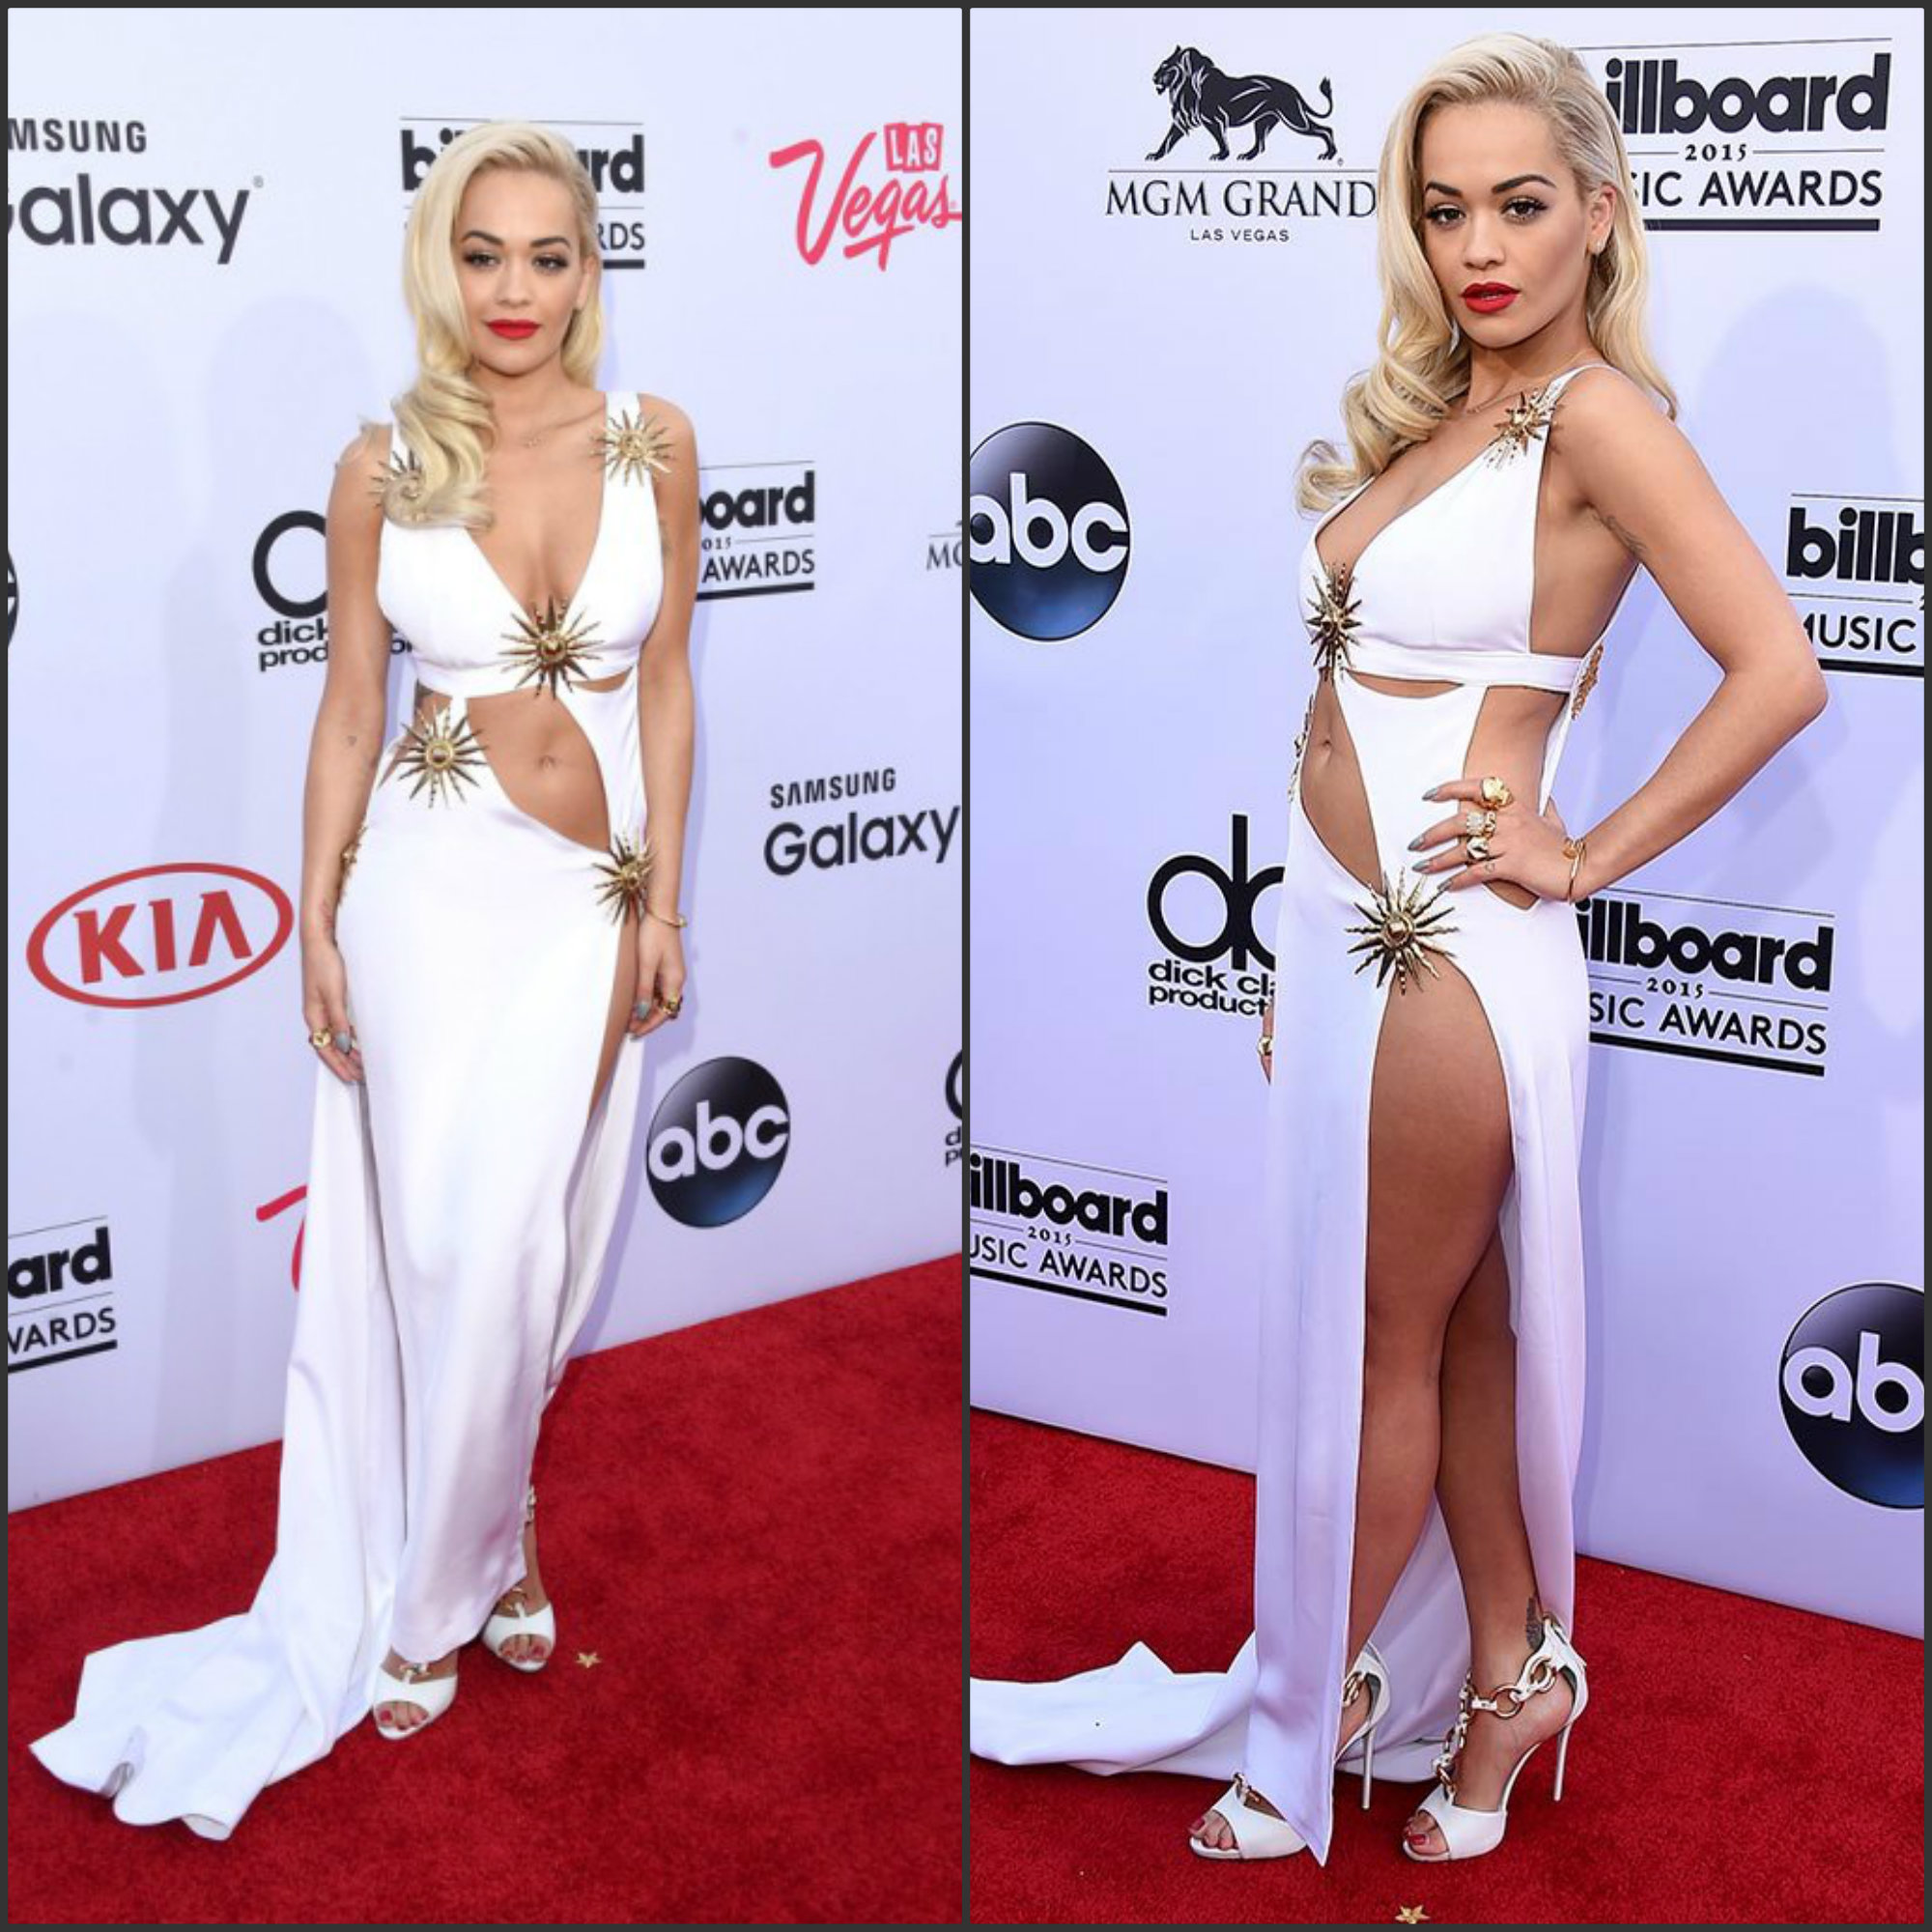 rita-ora-in-fausto-puglisi-at-2015-billboard-music-awards